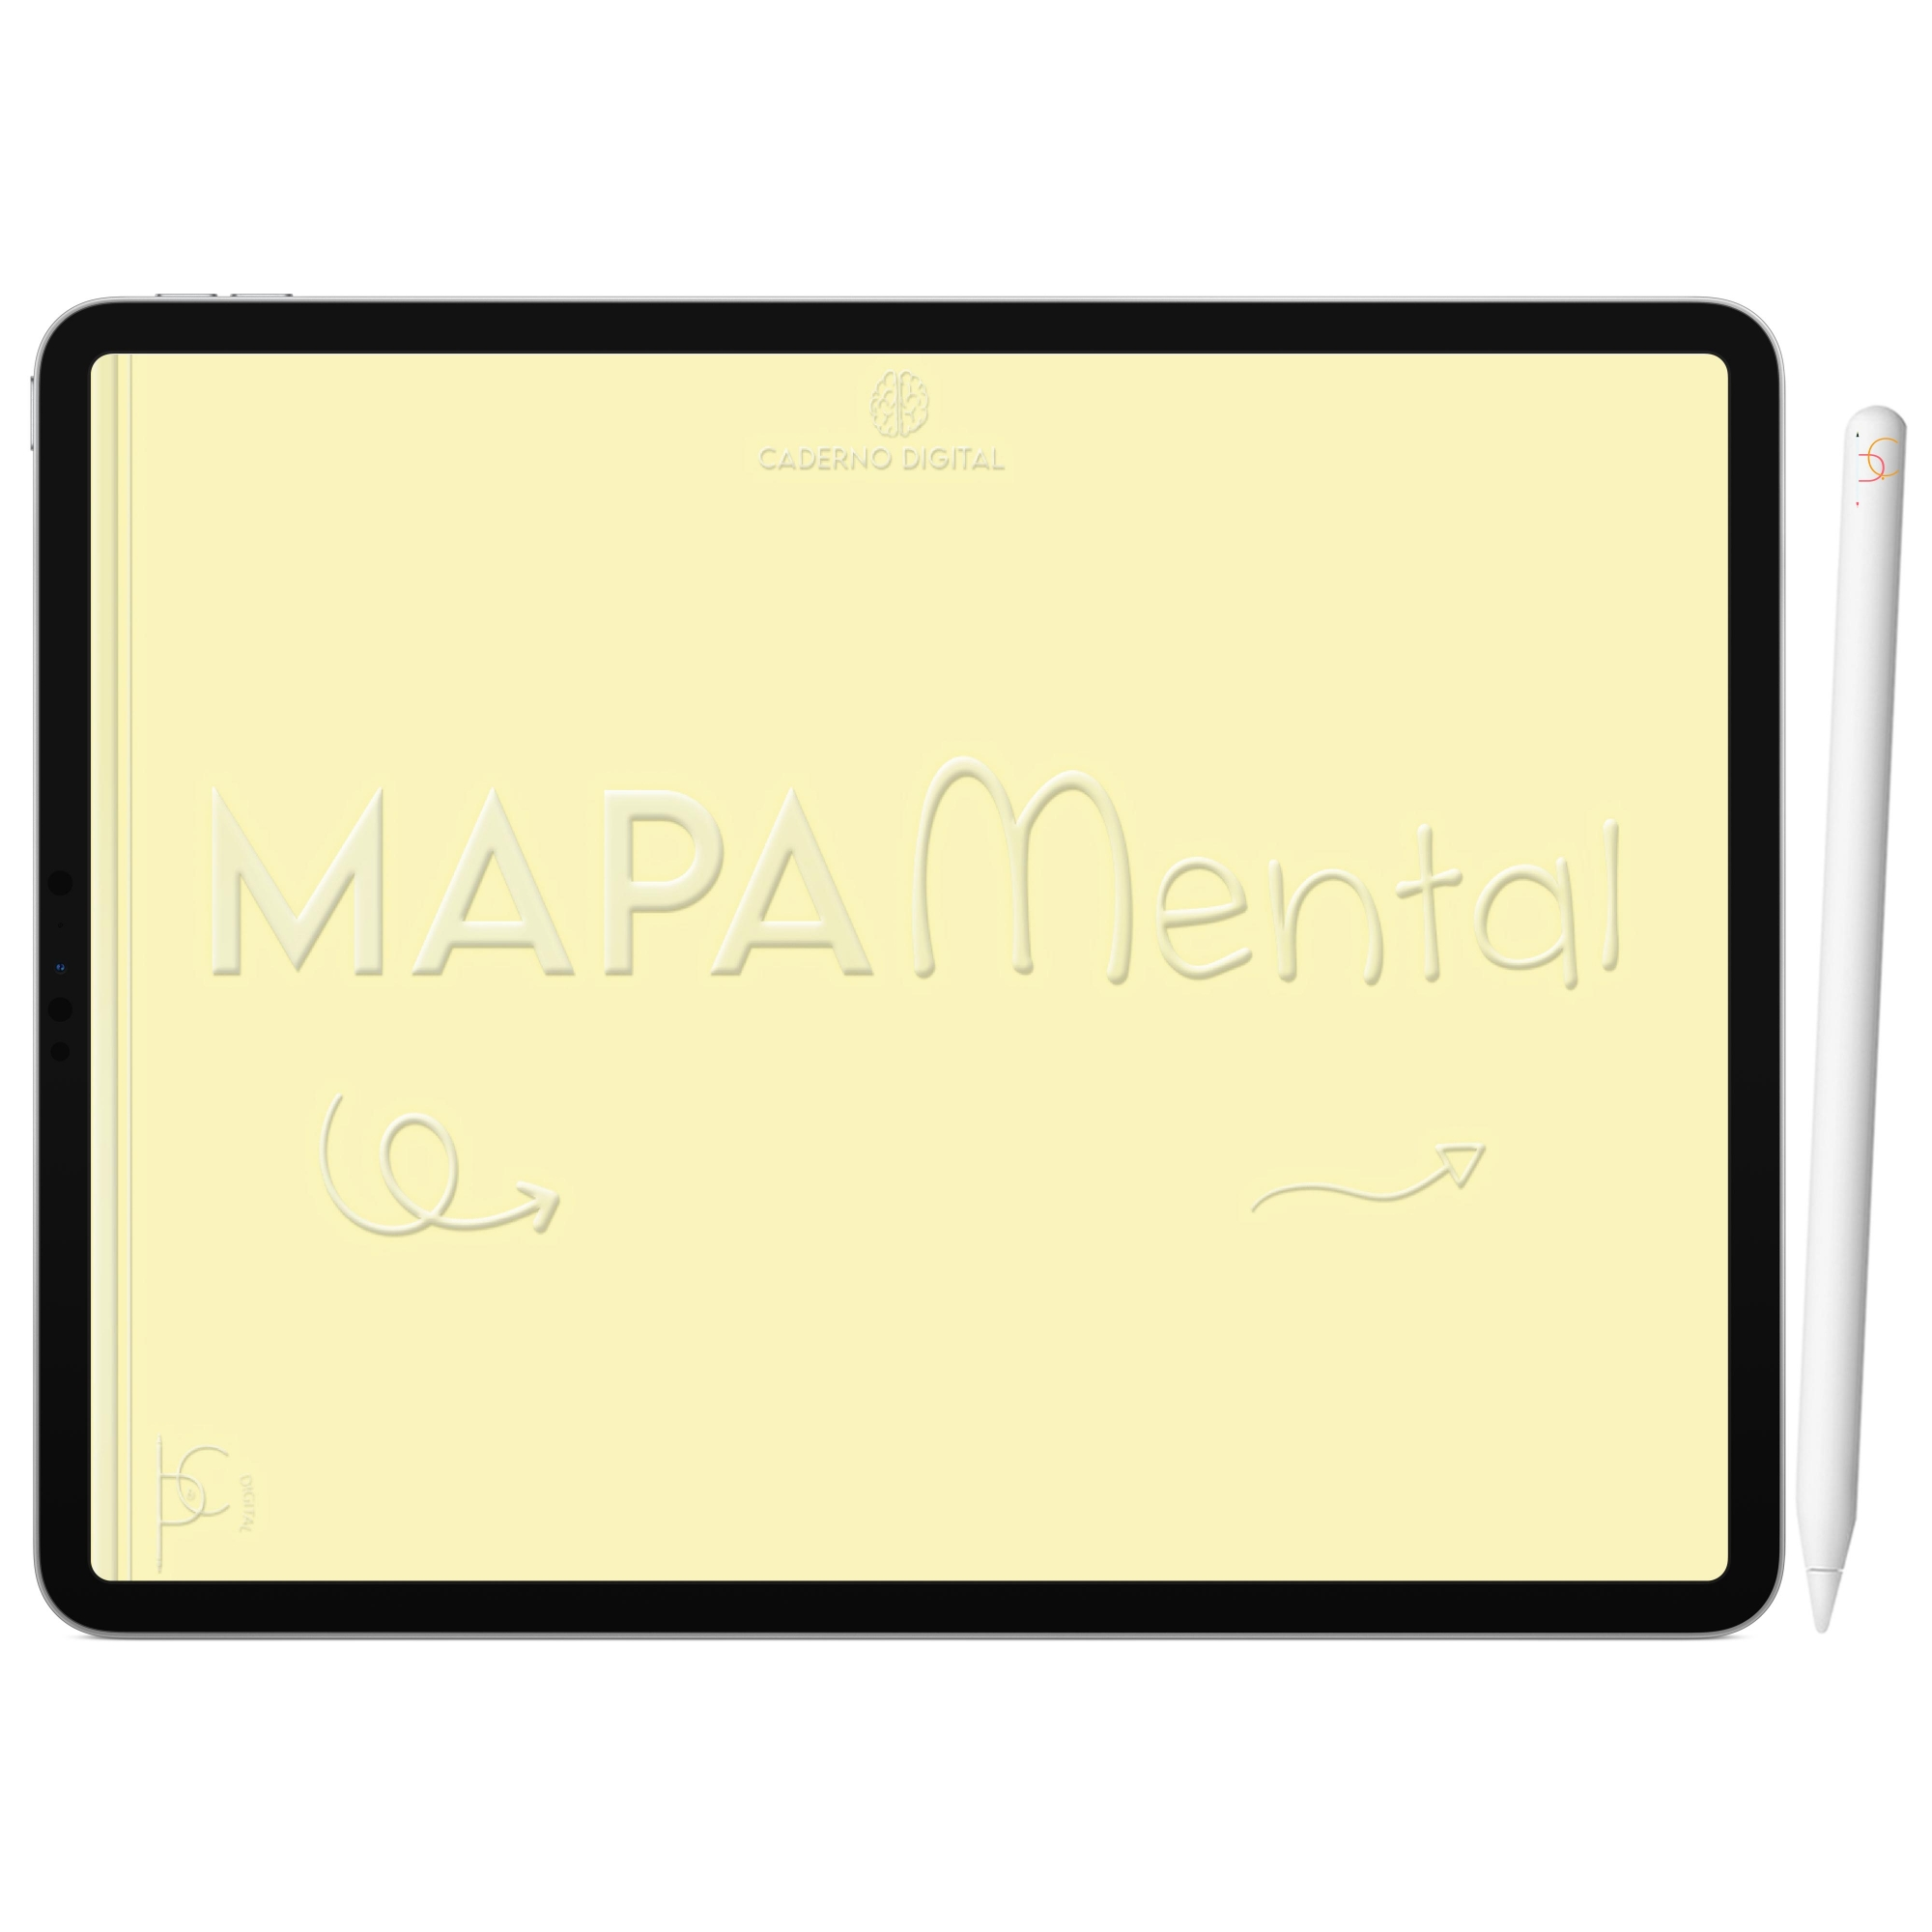 Mapa Mental Digital Amarelo Arco-Íris | Cinco Matérias Interativo| iPad Tablet | Download Instantâneo